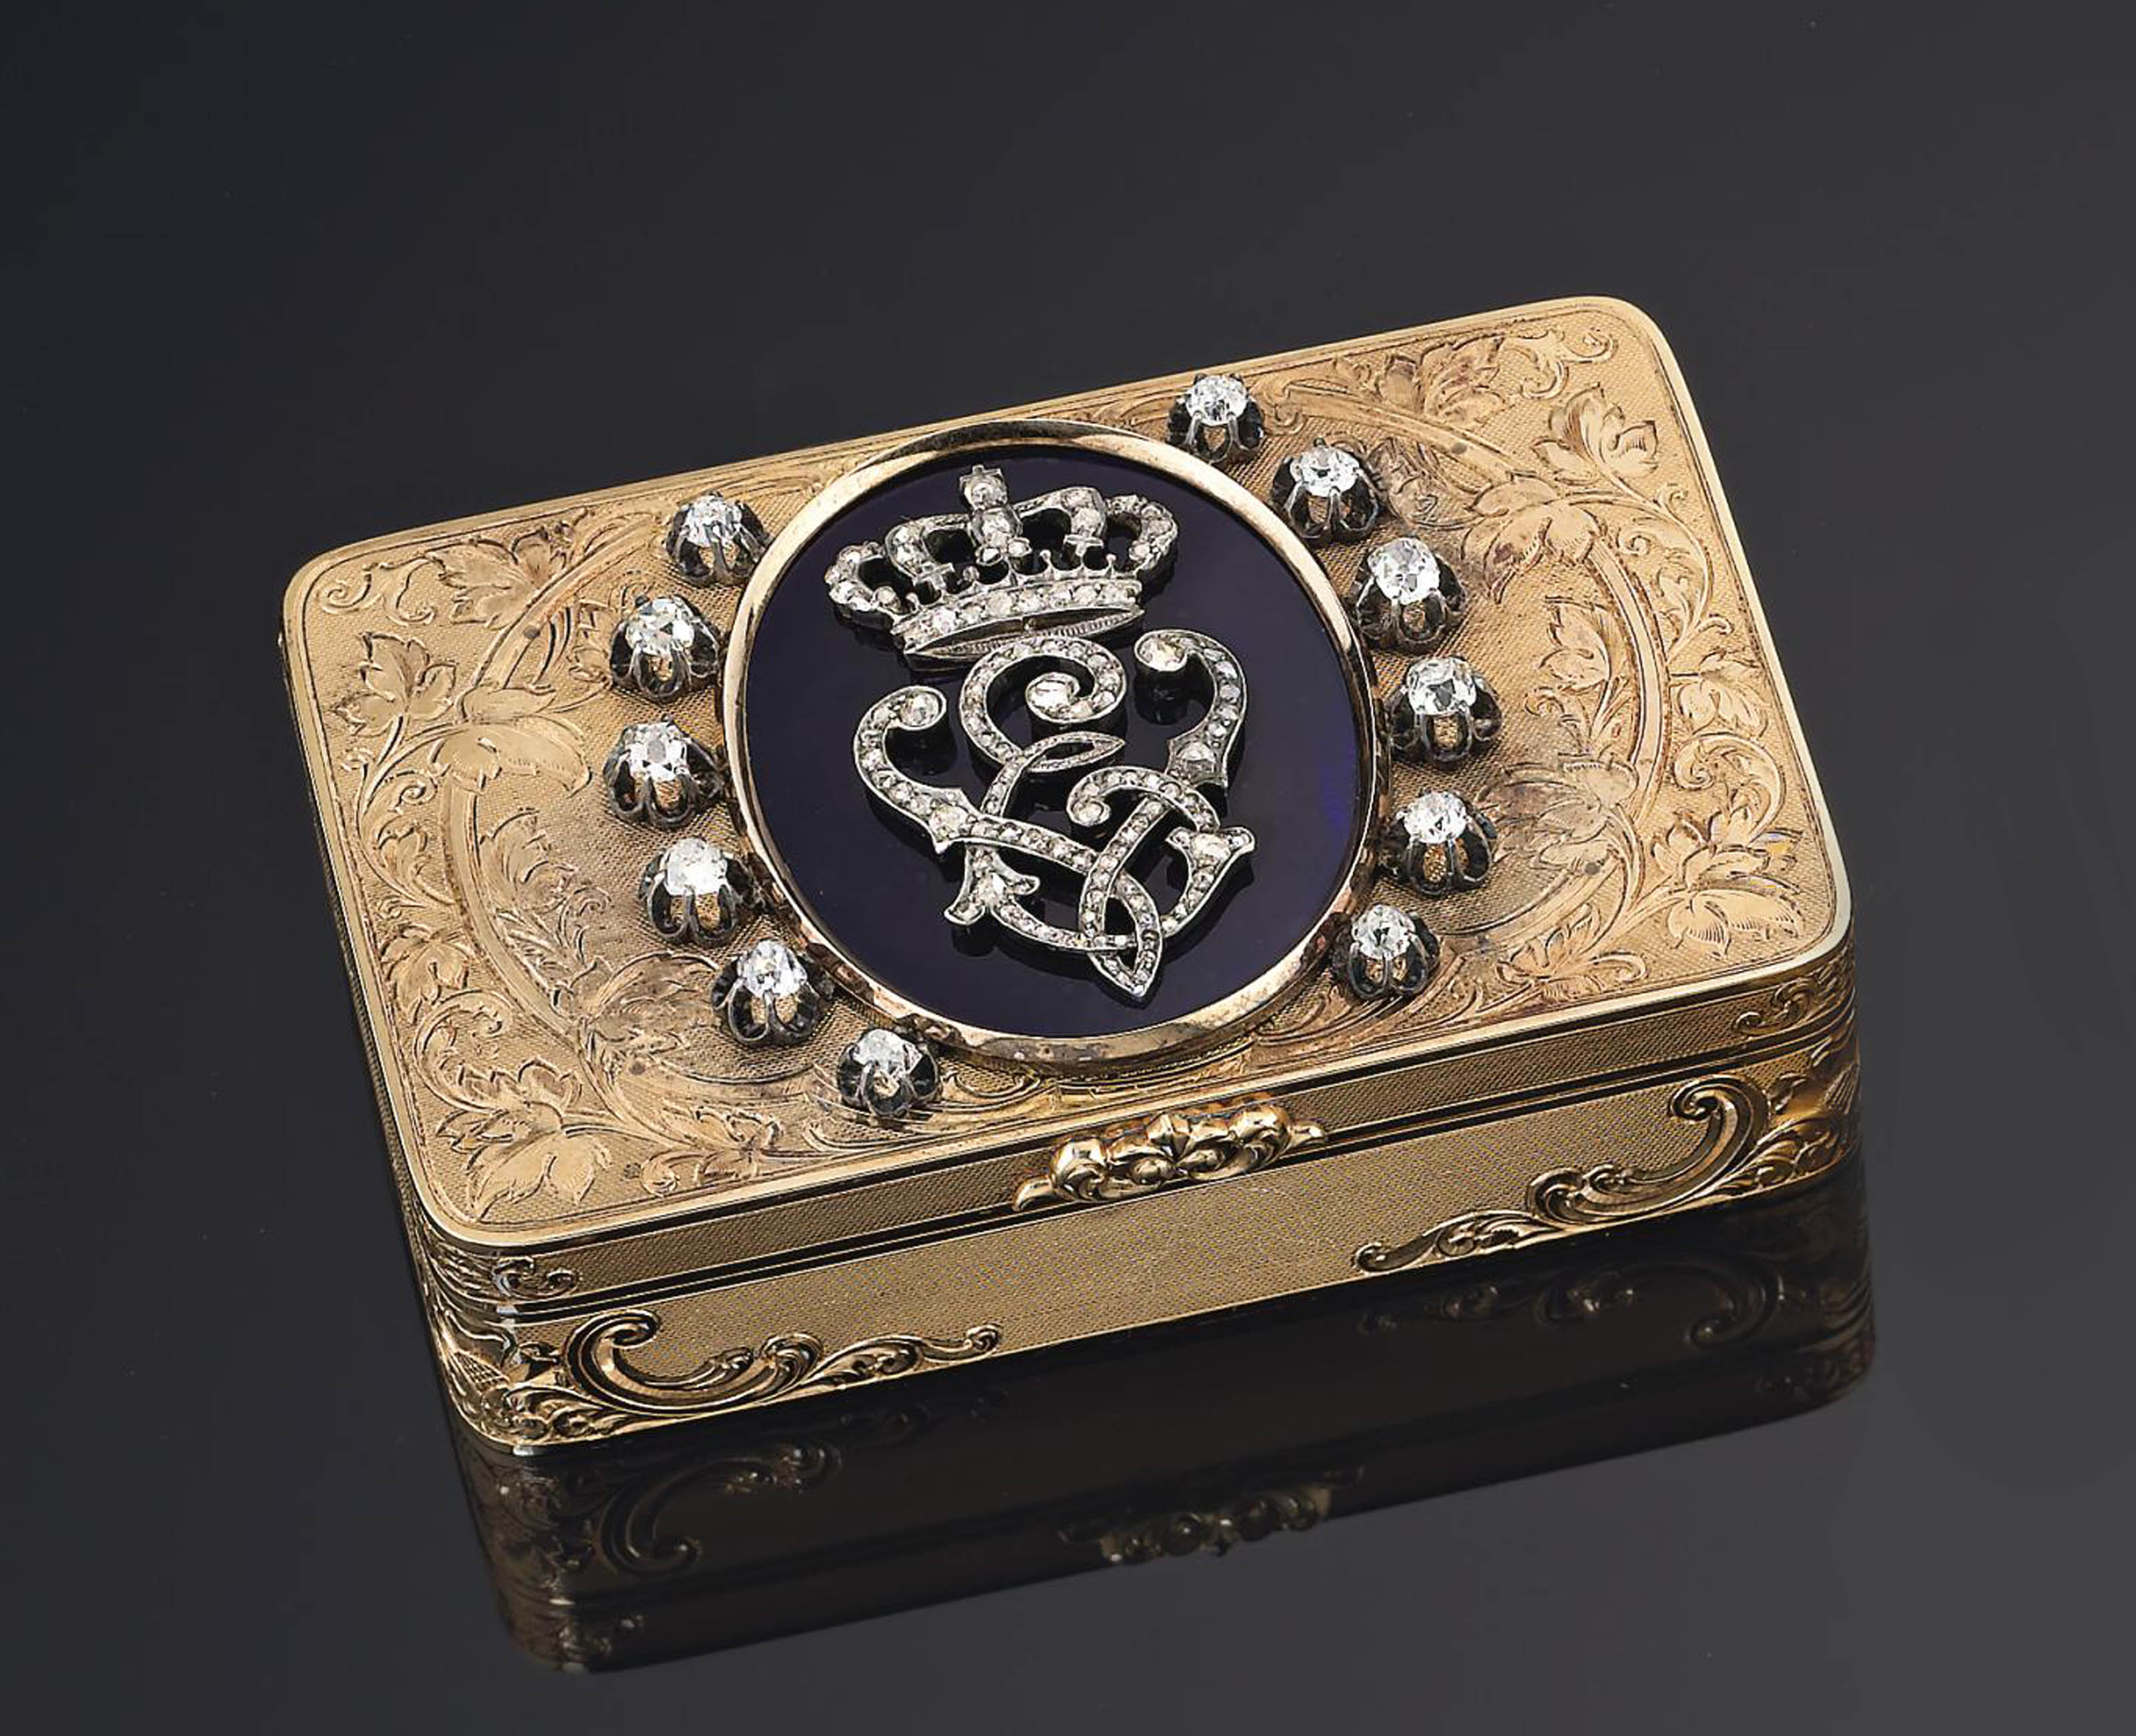 A ITALIAN ROYAL JEWELLED ENAMELLED GOLD PRESENTATION SNUFF-BOX